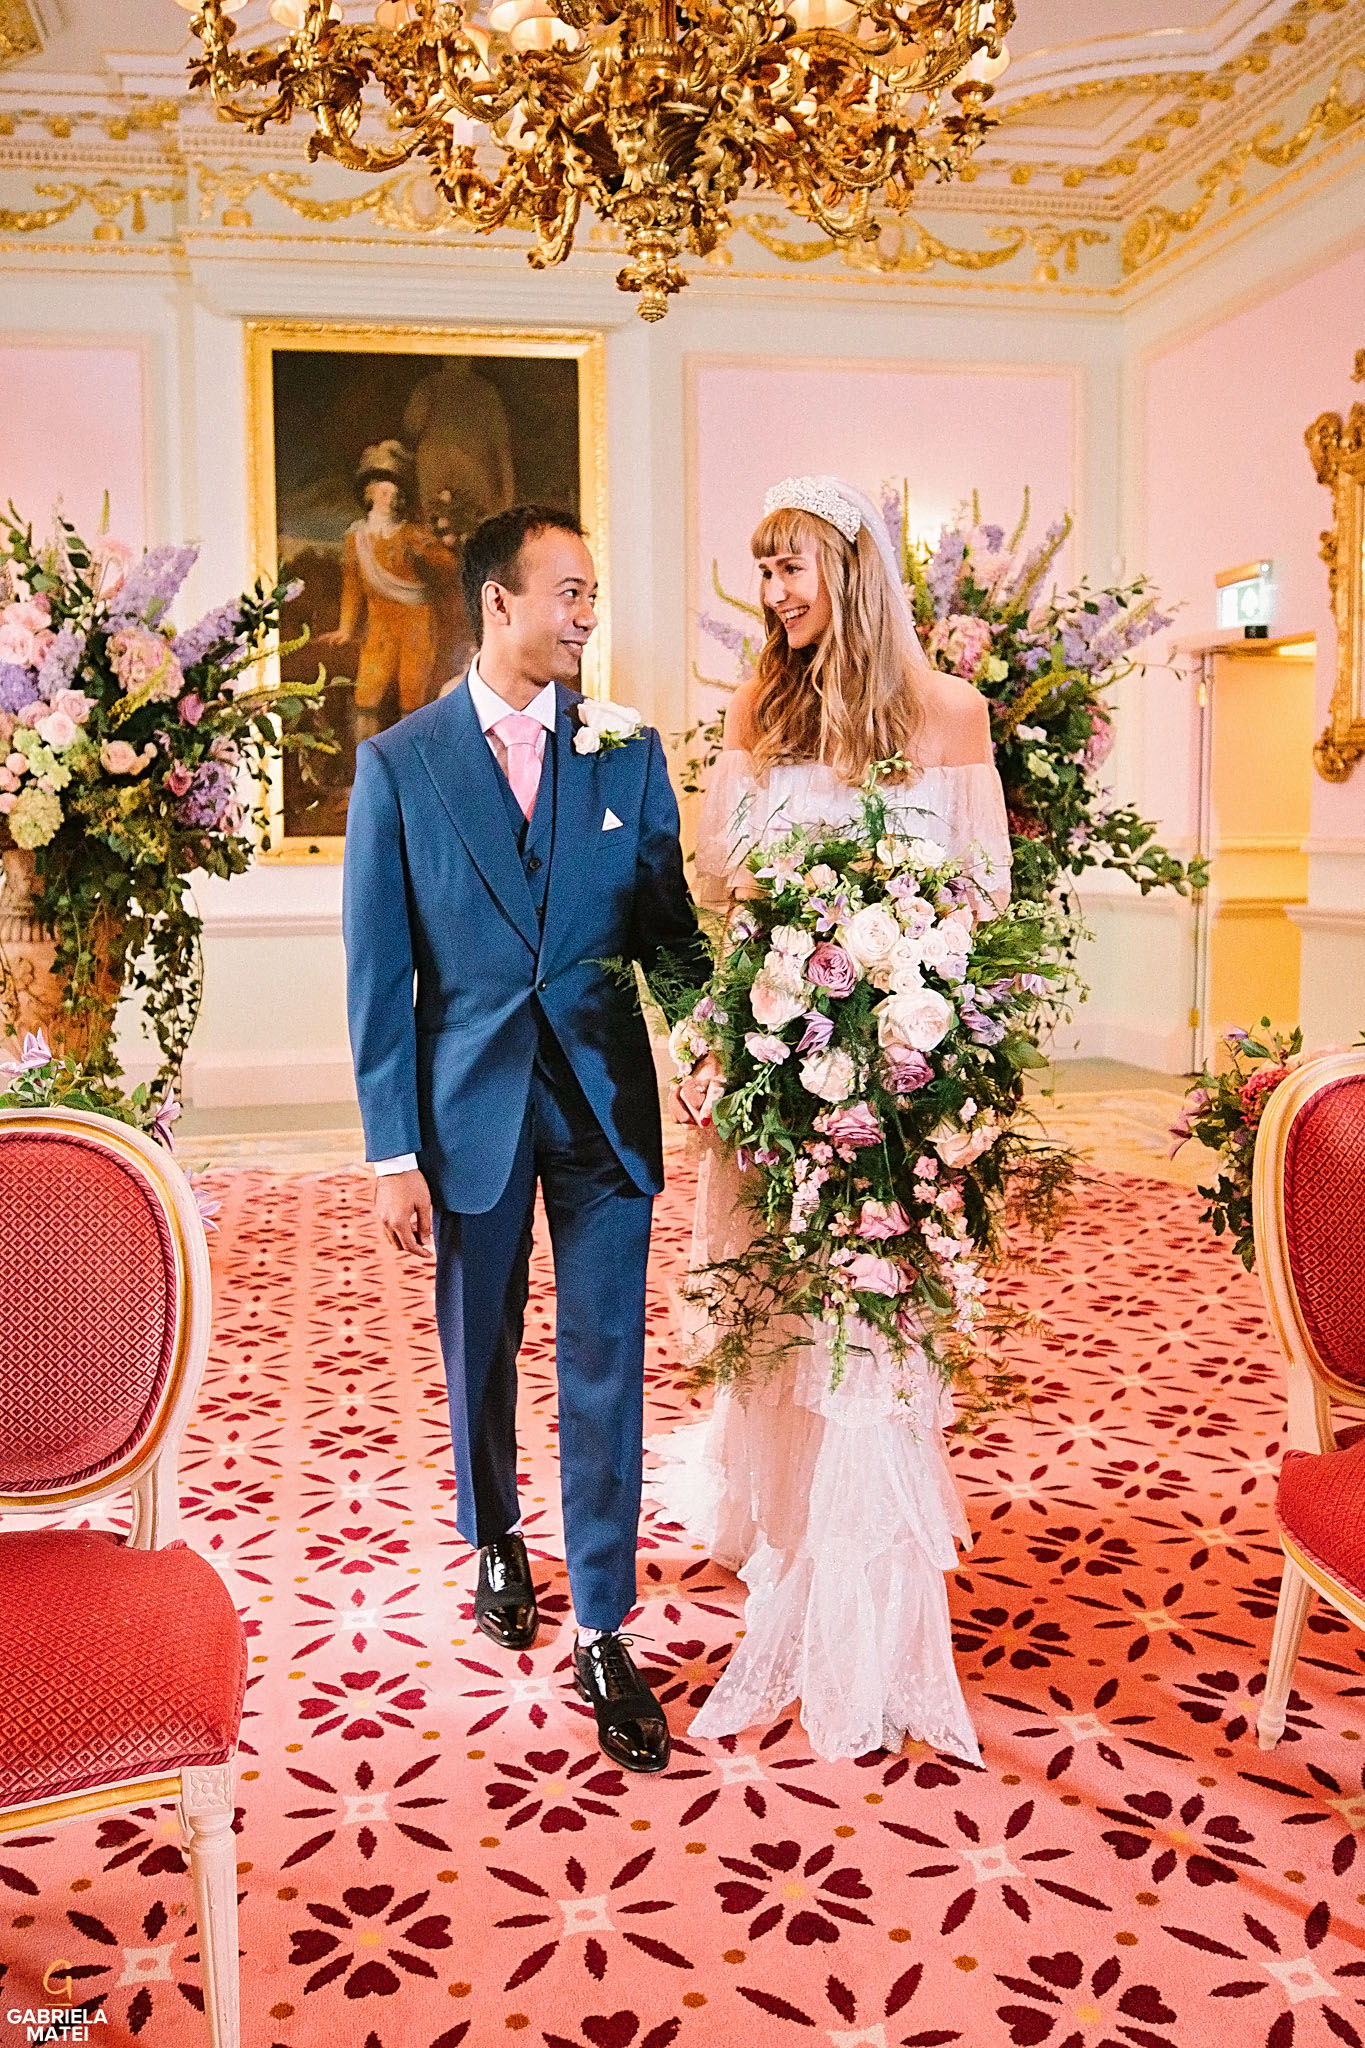 Bride and groom looking towards each other during civil wedding at The Ritz London